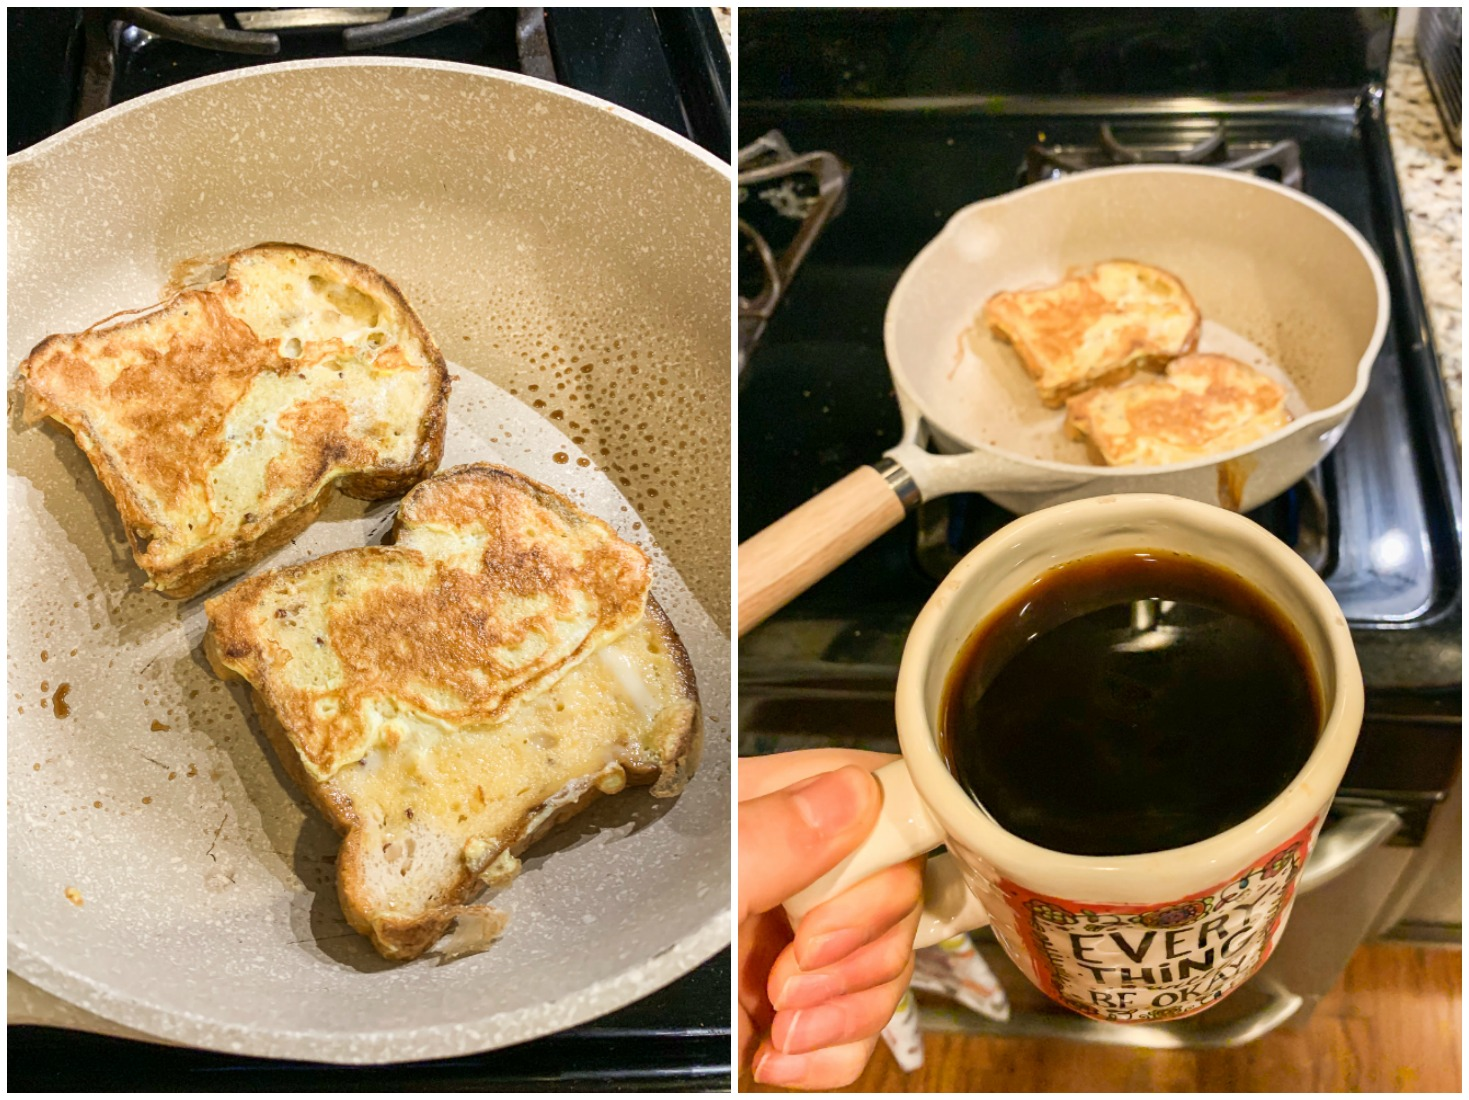 healthy breakfast, French toast, light, gluten free, eggs, low carb, low calorie, easy to make, simply taralynn, recap blog,